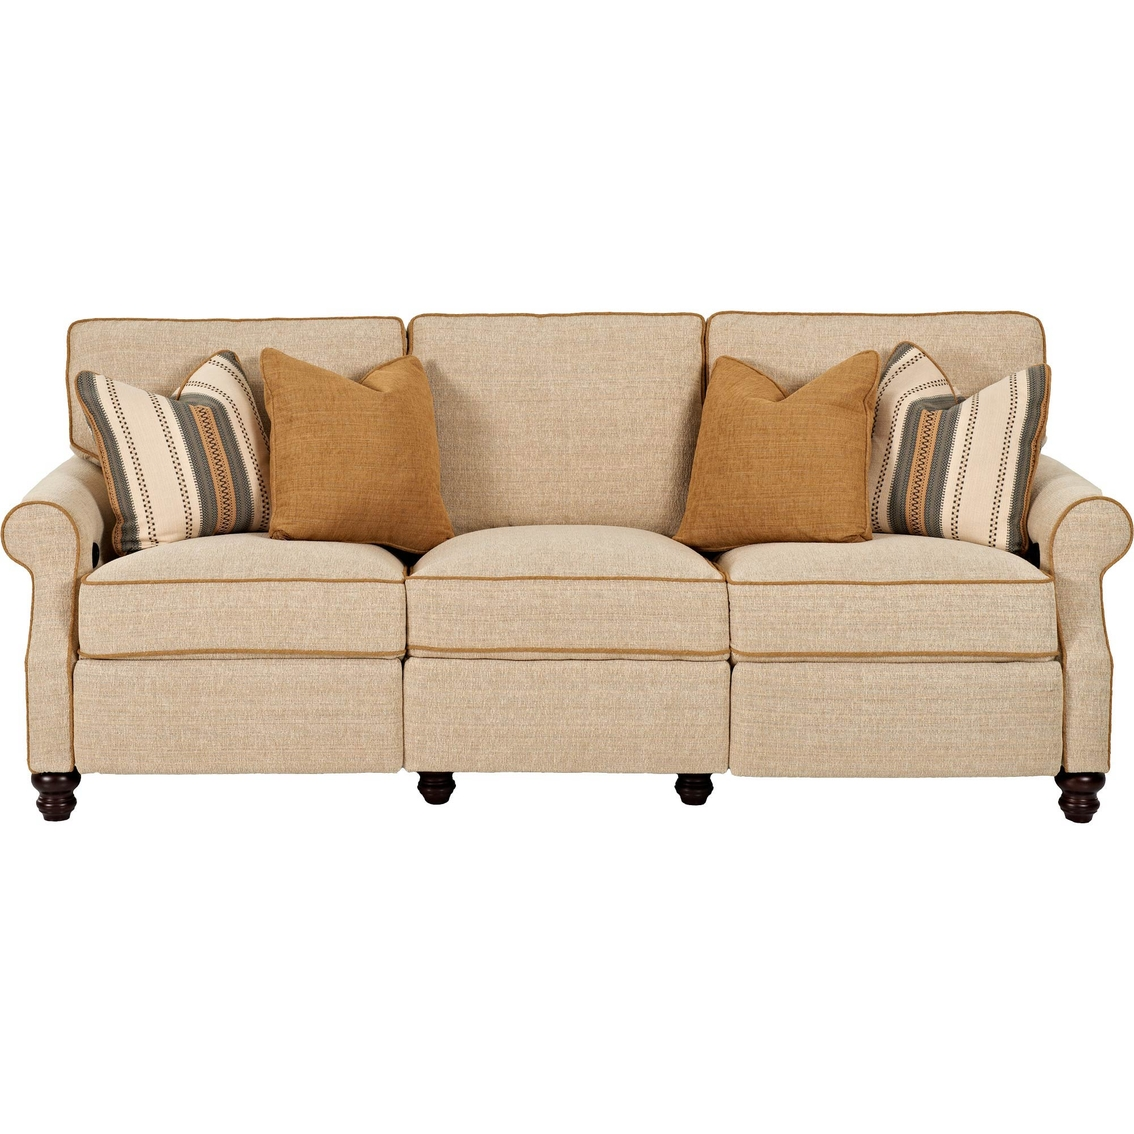 Klaussner Reclining Sofa Best Reclining Sofa For The Money Klaussner Bonded Leather Thesofa